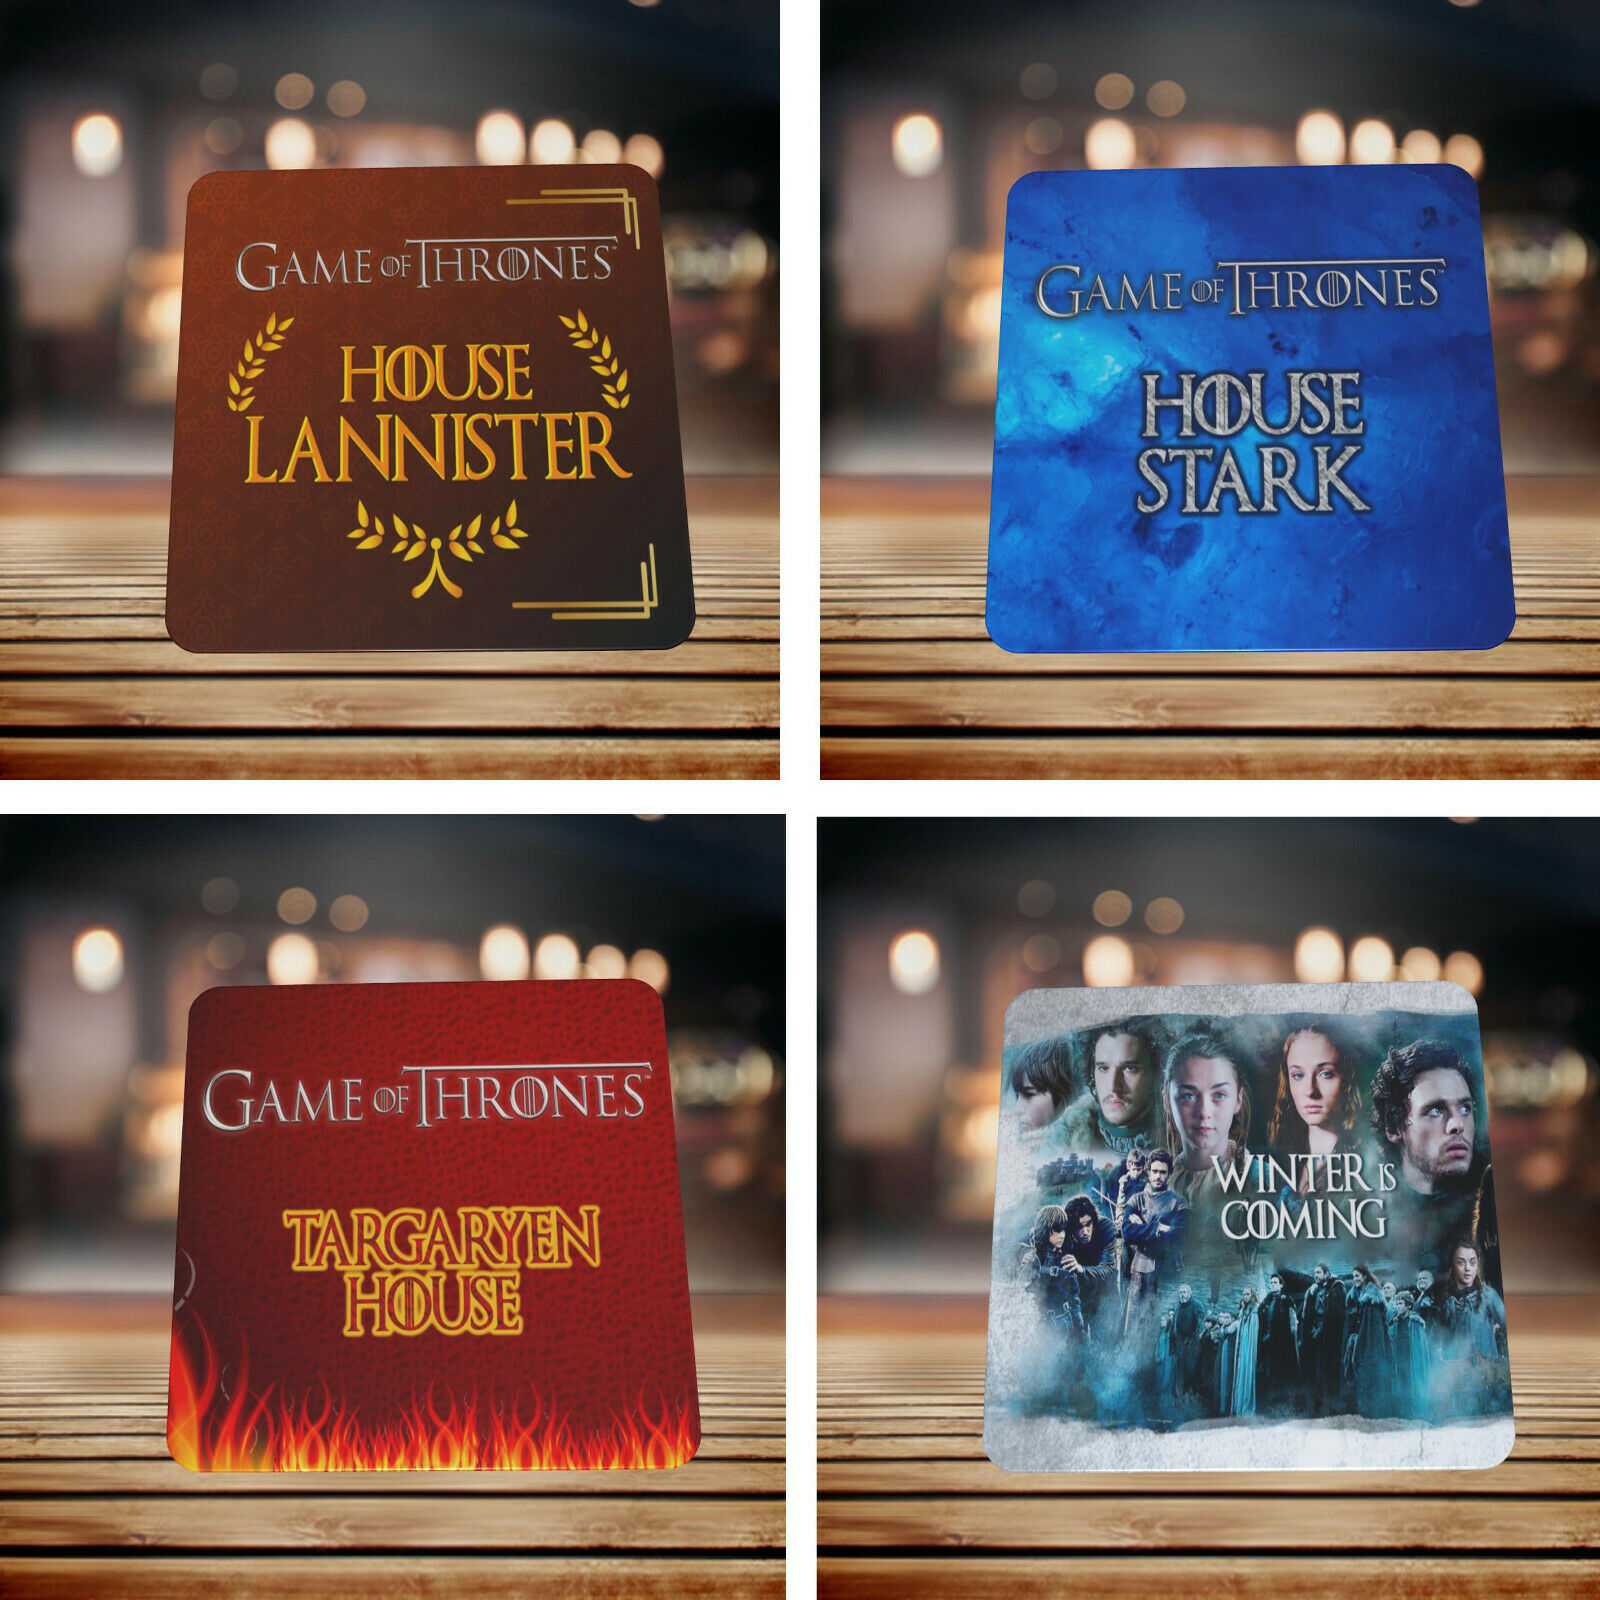 GAME OF THRONES DRINK COASTERS - VARIOUS DESIGNS - PERFECT GIFT